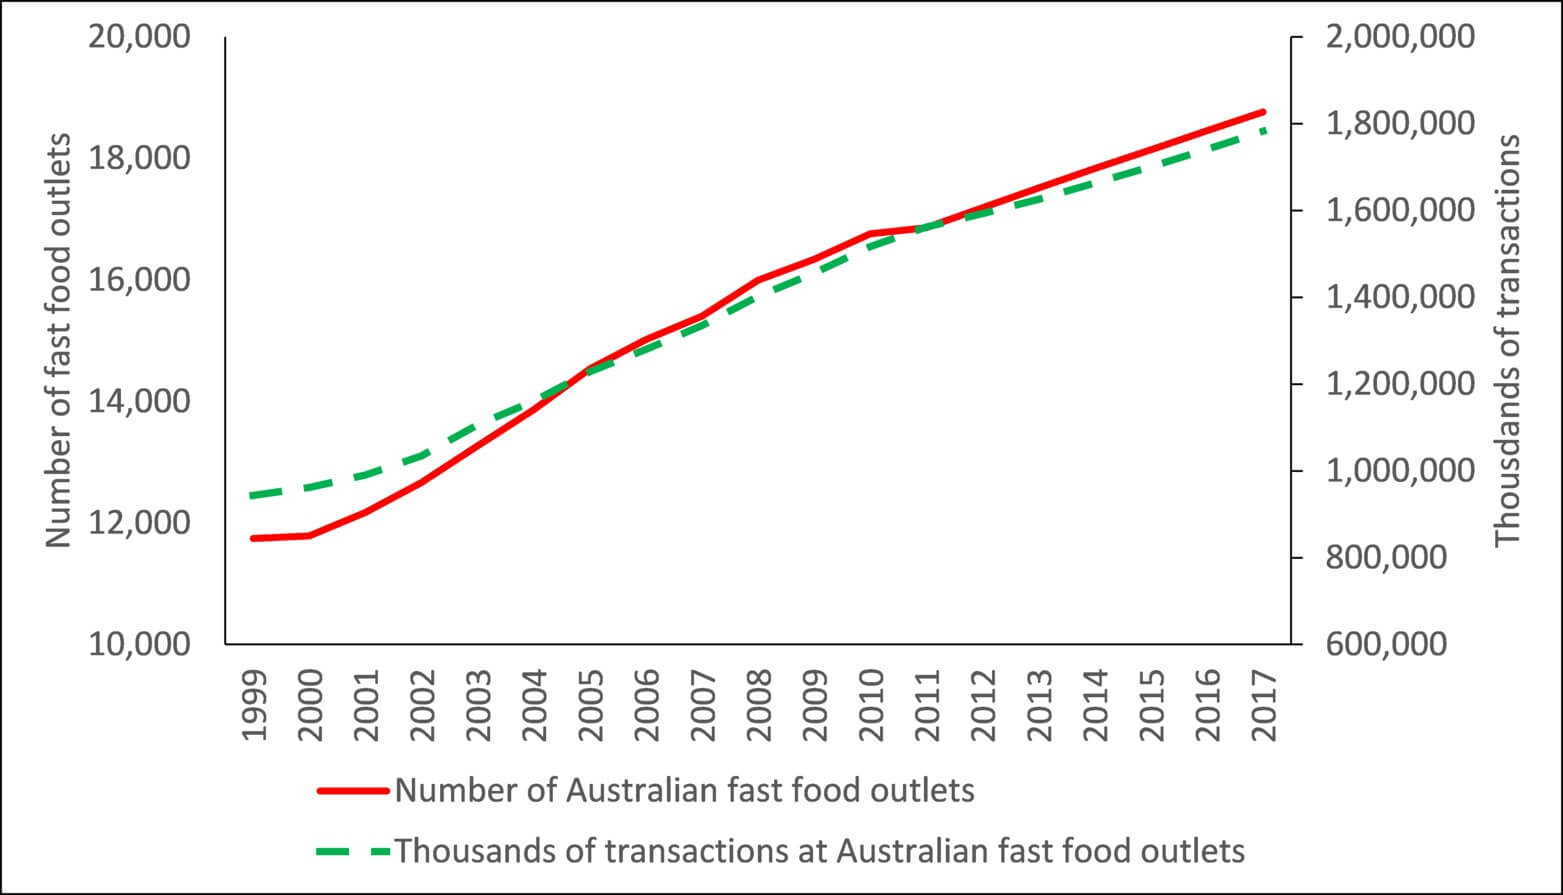 Australian fast food outlets stats